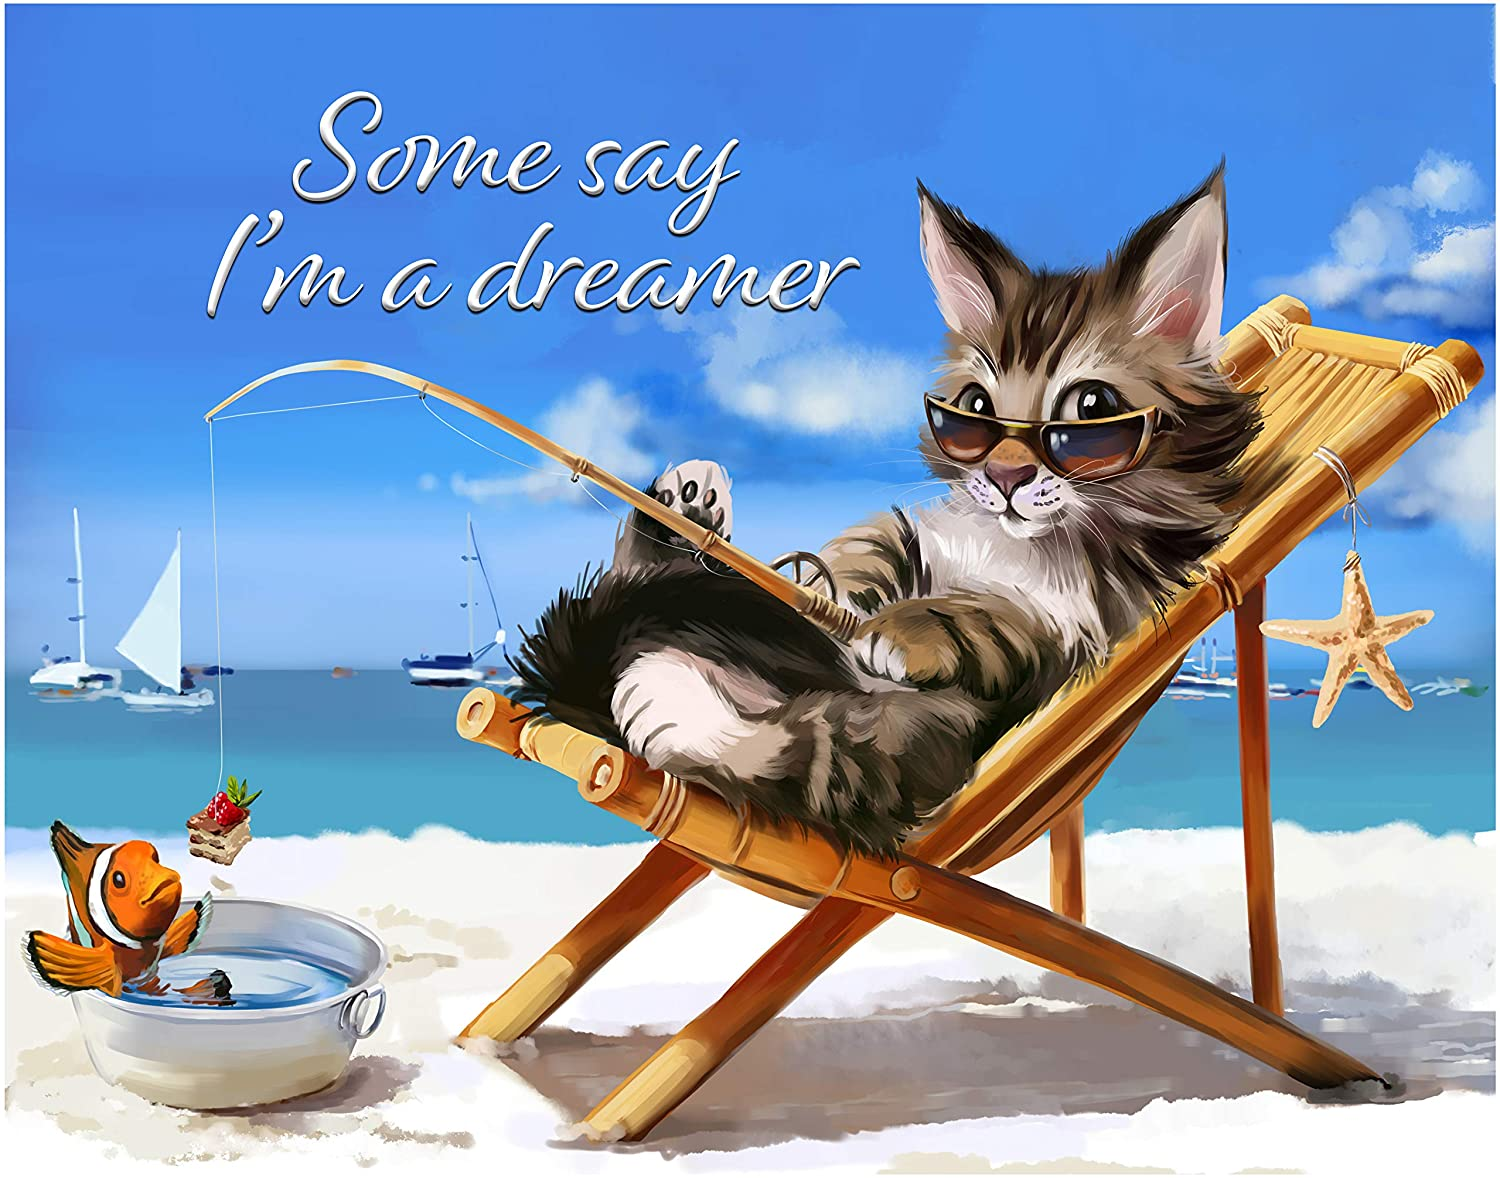 Some Say Im a Dreamer Fine Art Print Decor- Inspirational and Motivational Poster Classroom or Dorm Decor Under $15 Gift for those who Love Funny Cat Art 11x14 Unframed Wall Art Photo